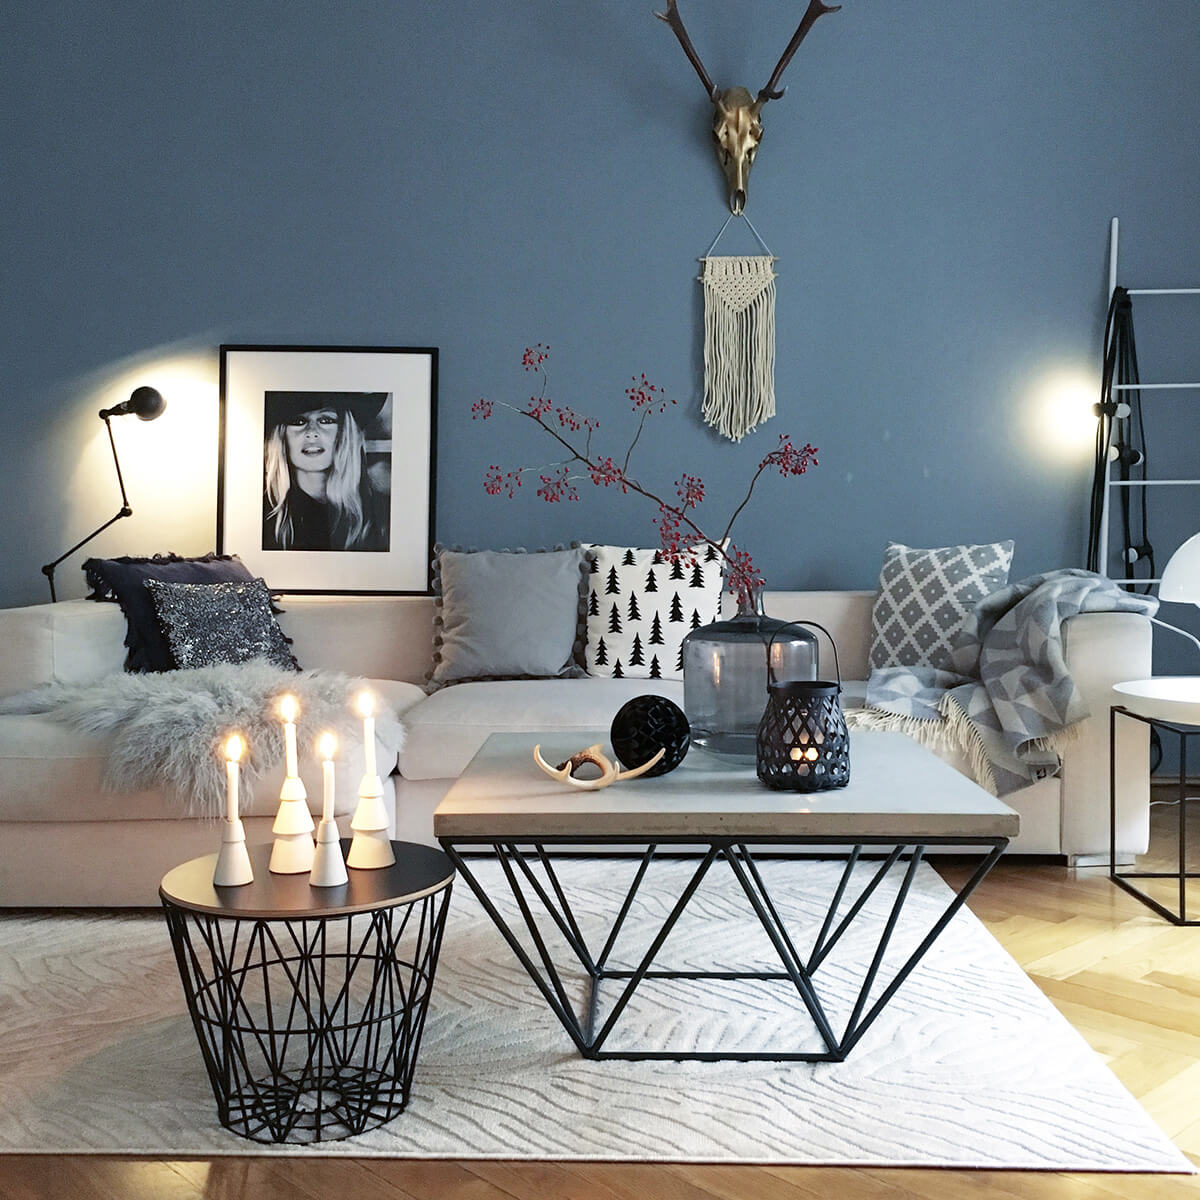 Modern Minimalist Flower and Candle Display in Shades of Grey